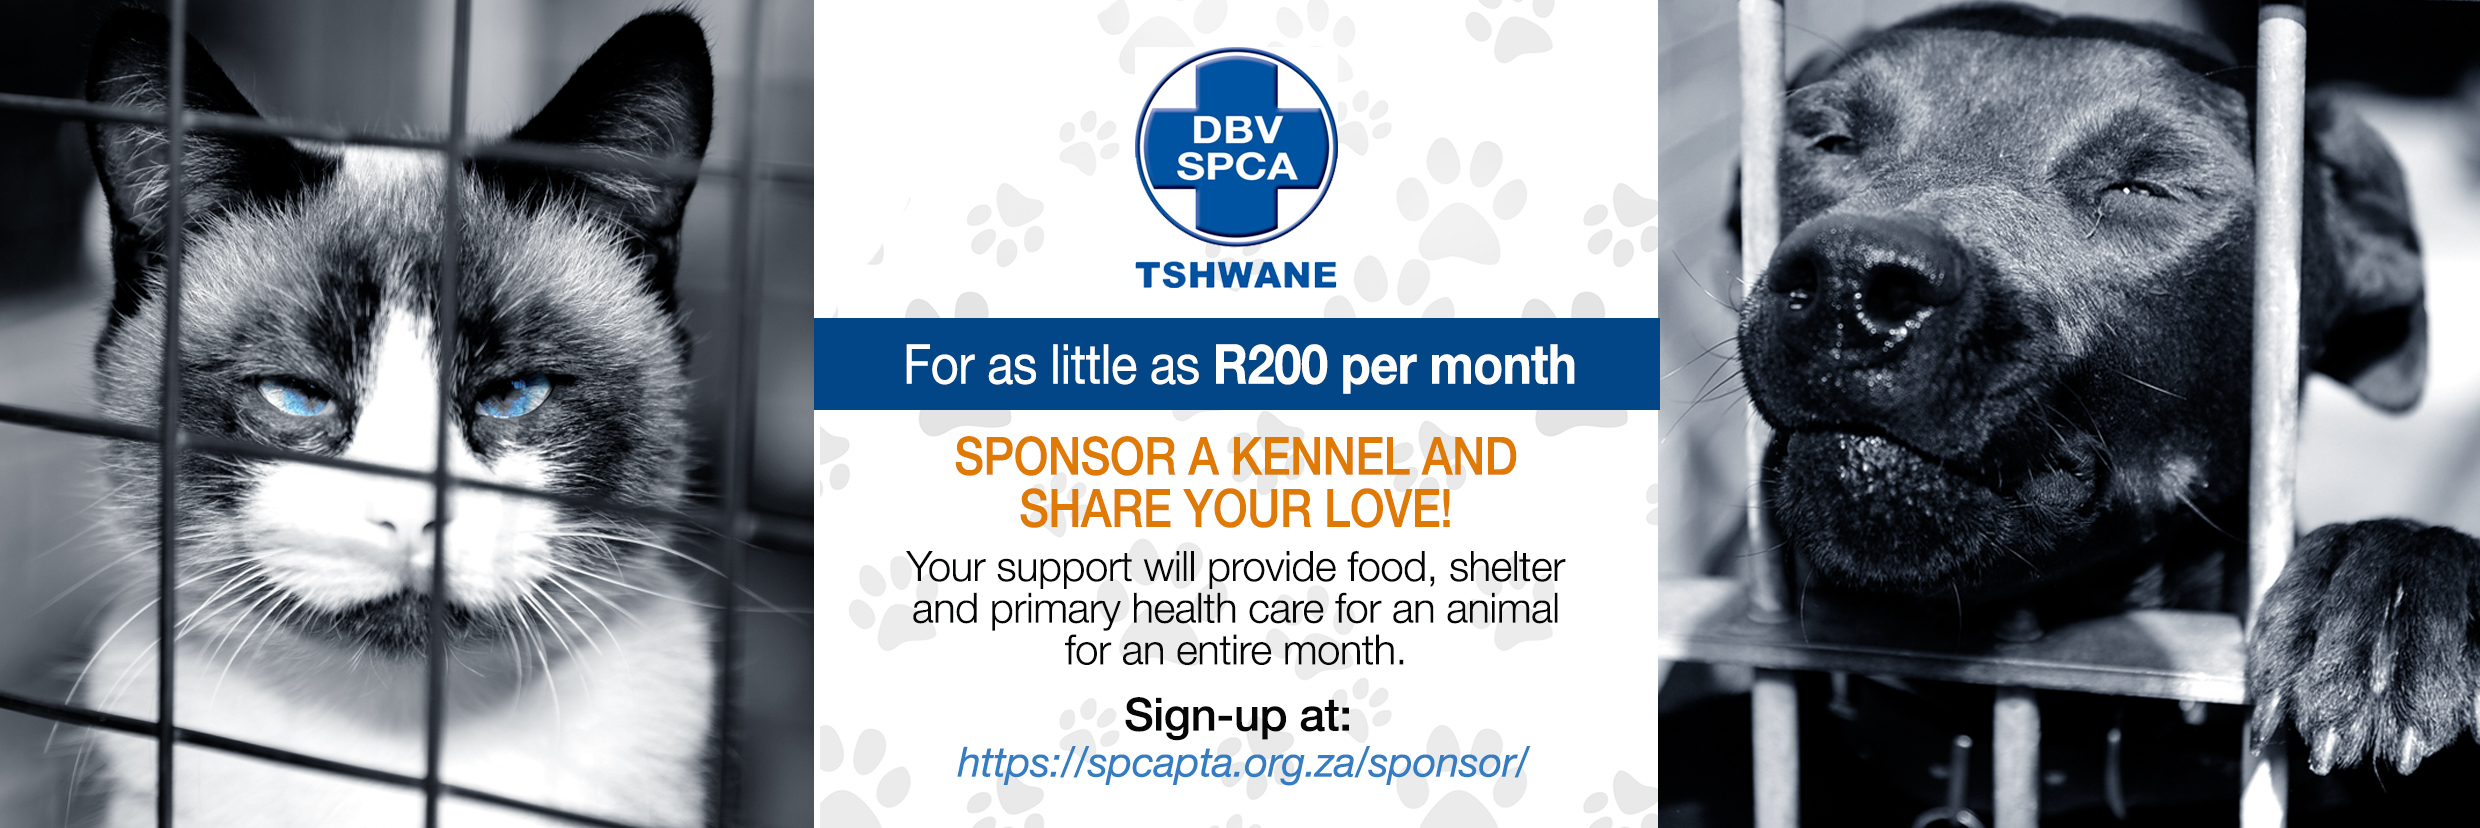 Tshwane SPCA - Society for the Prevention of Cruelty to Animals